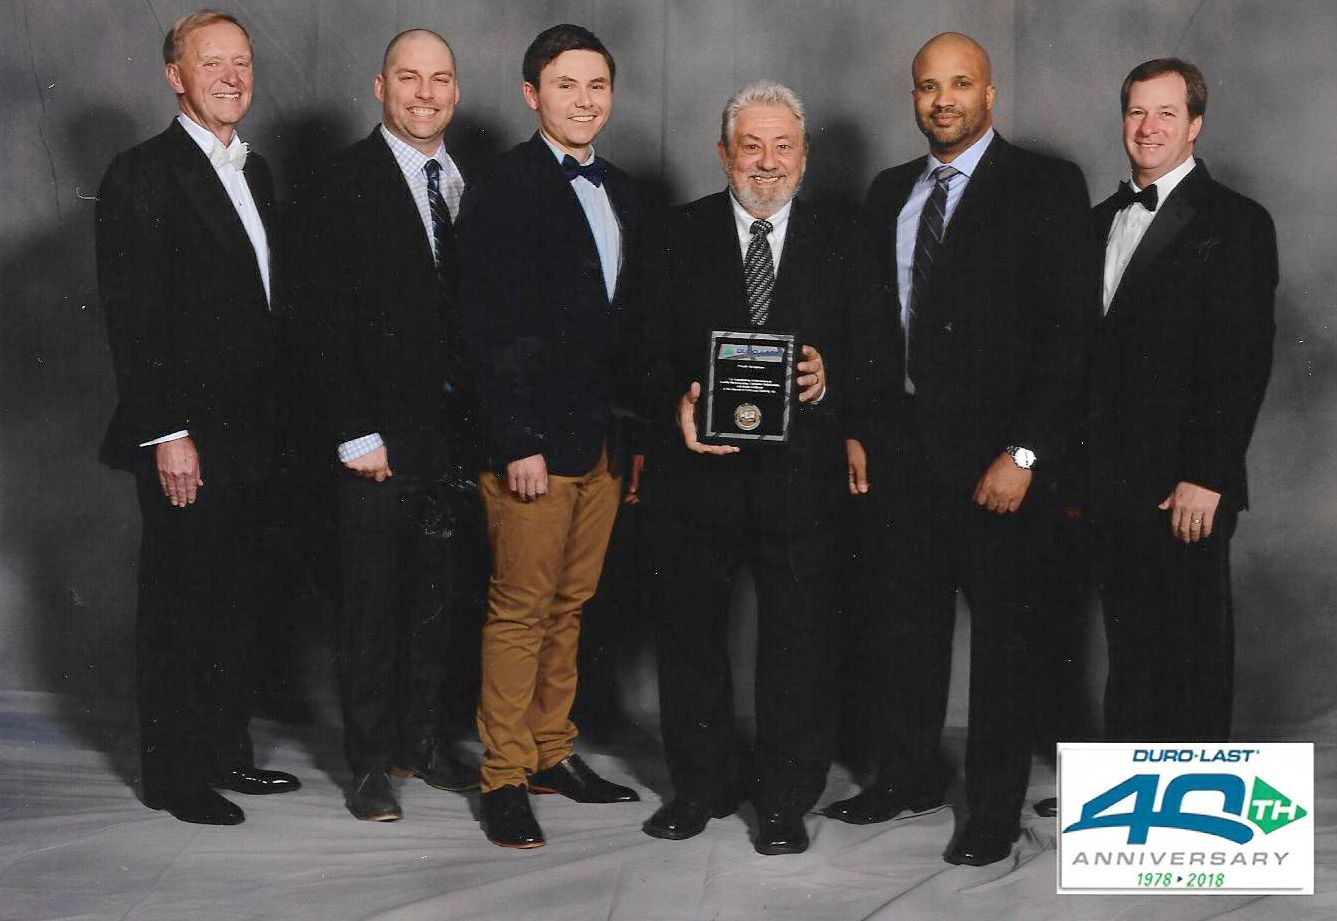 Watertite Roofing wins Elite Contractor Award from Duro-Last